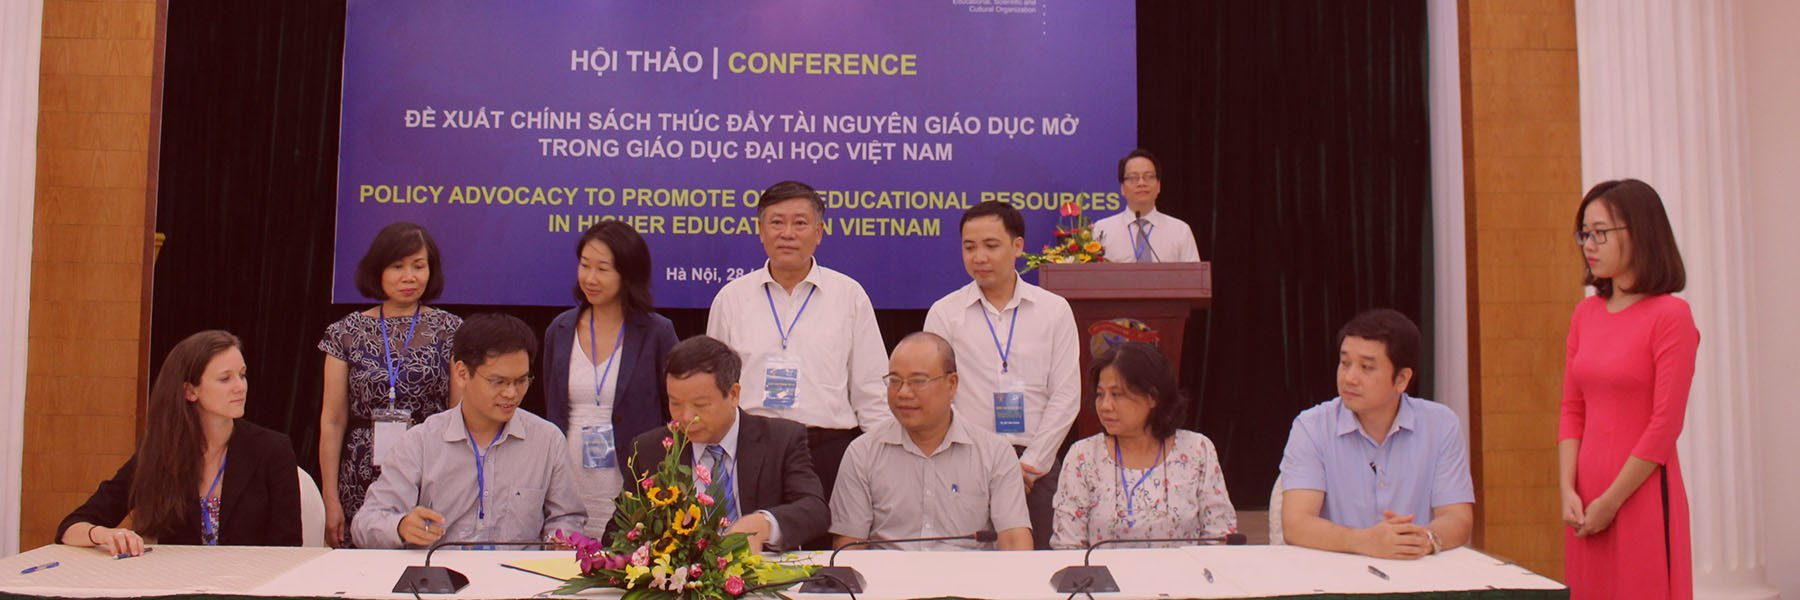 Policy advocacy to promote of educational resources in higher education Vietnam